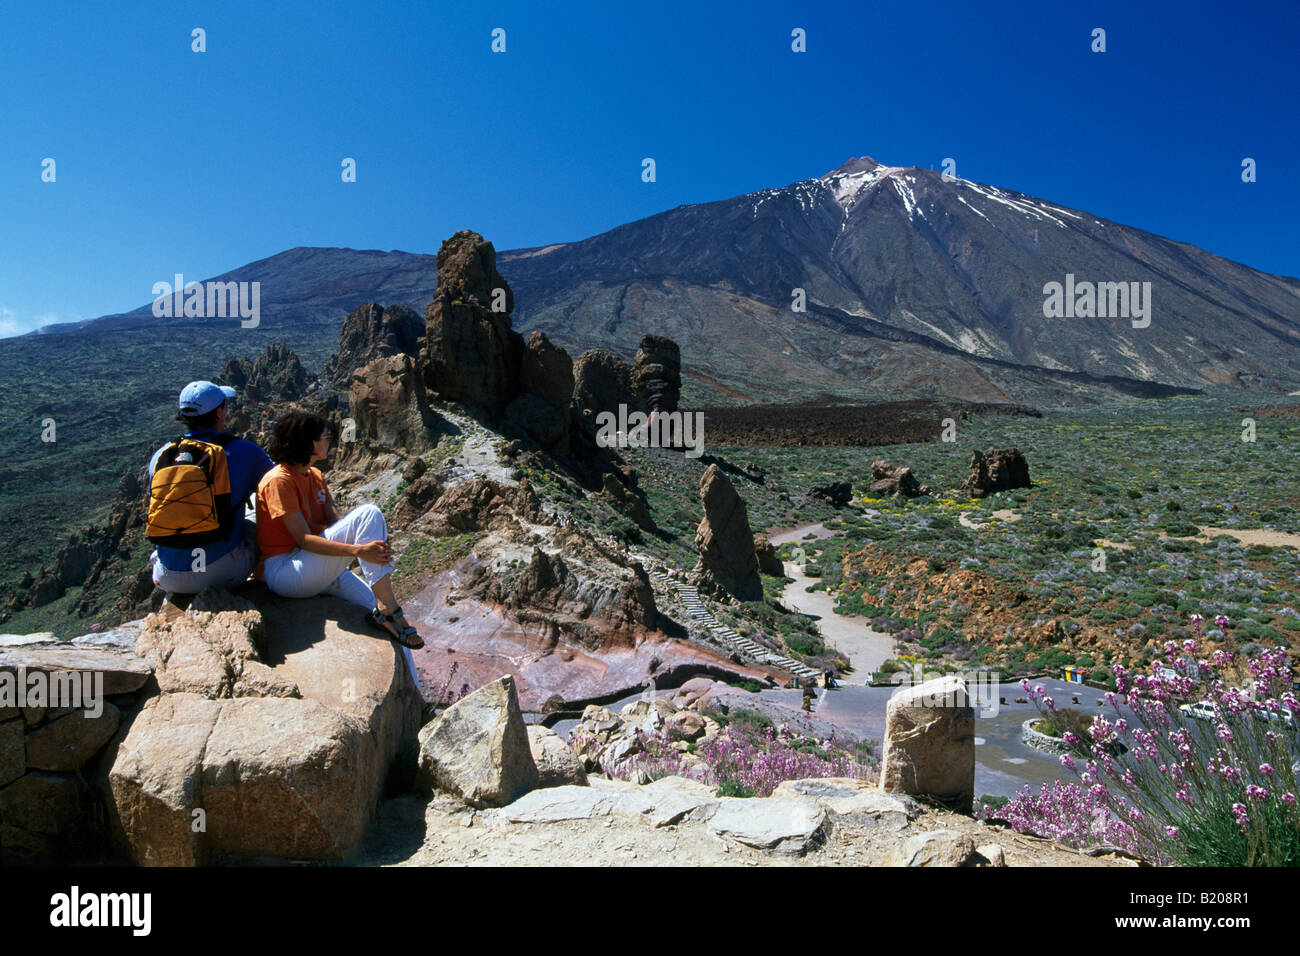 Hiking couple at Mount Teide Tenerife Canary Islands Spain - Stock Image